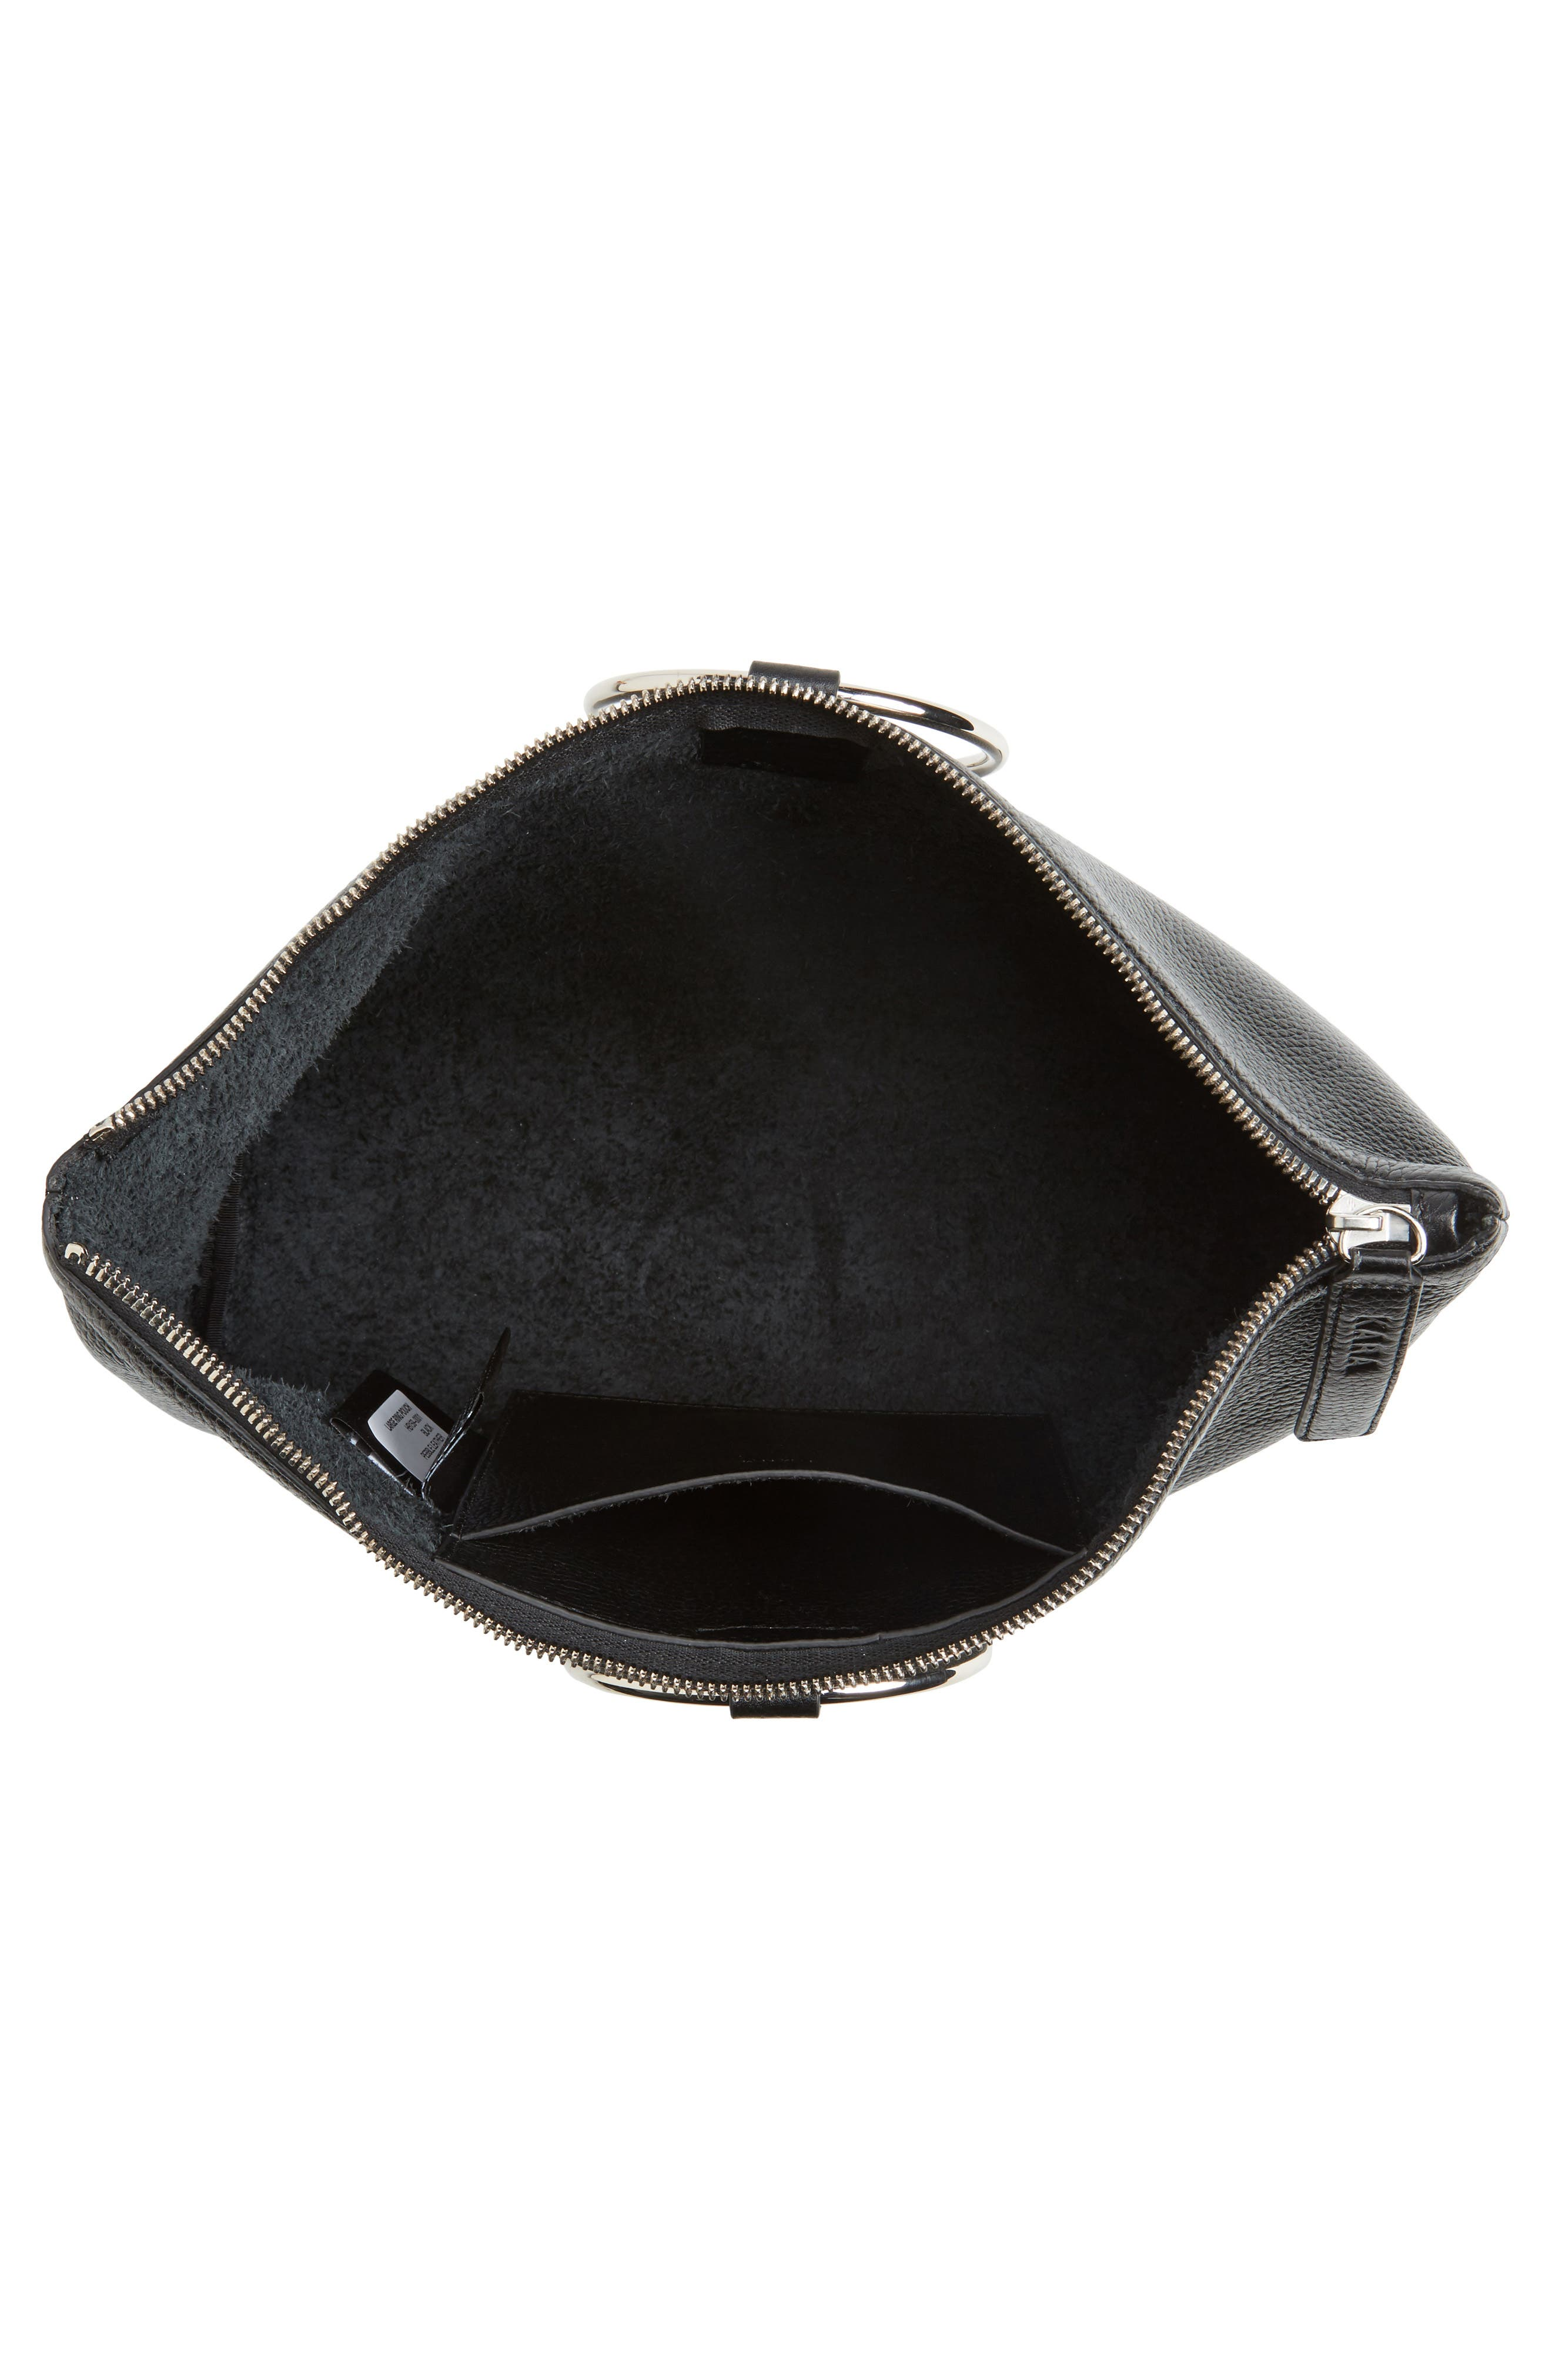 KARA, Large Pebbled Leather Ring Clutch, Alternate thumbnail 4, color, 001